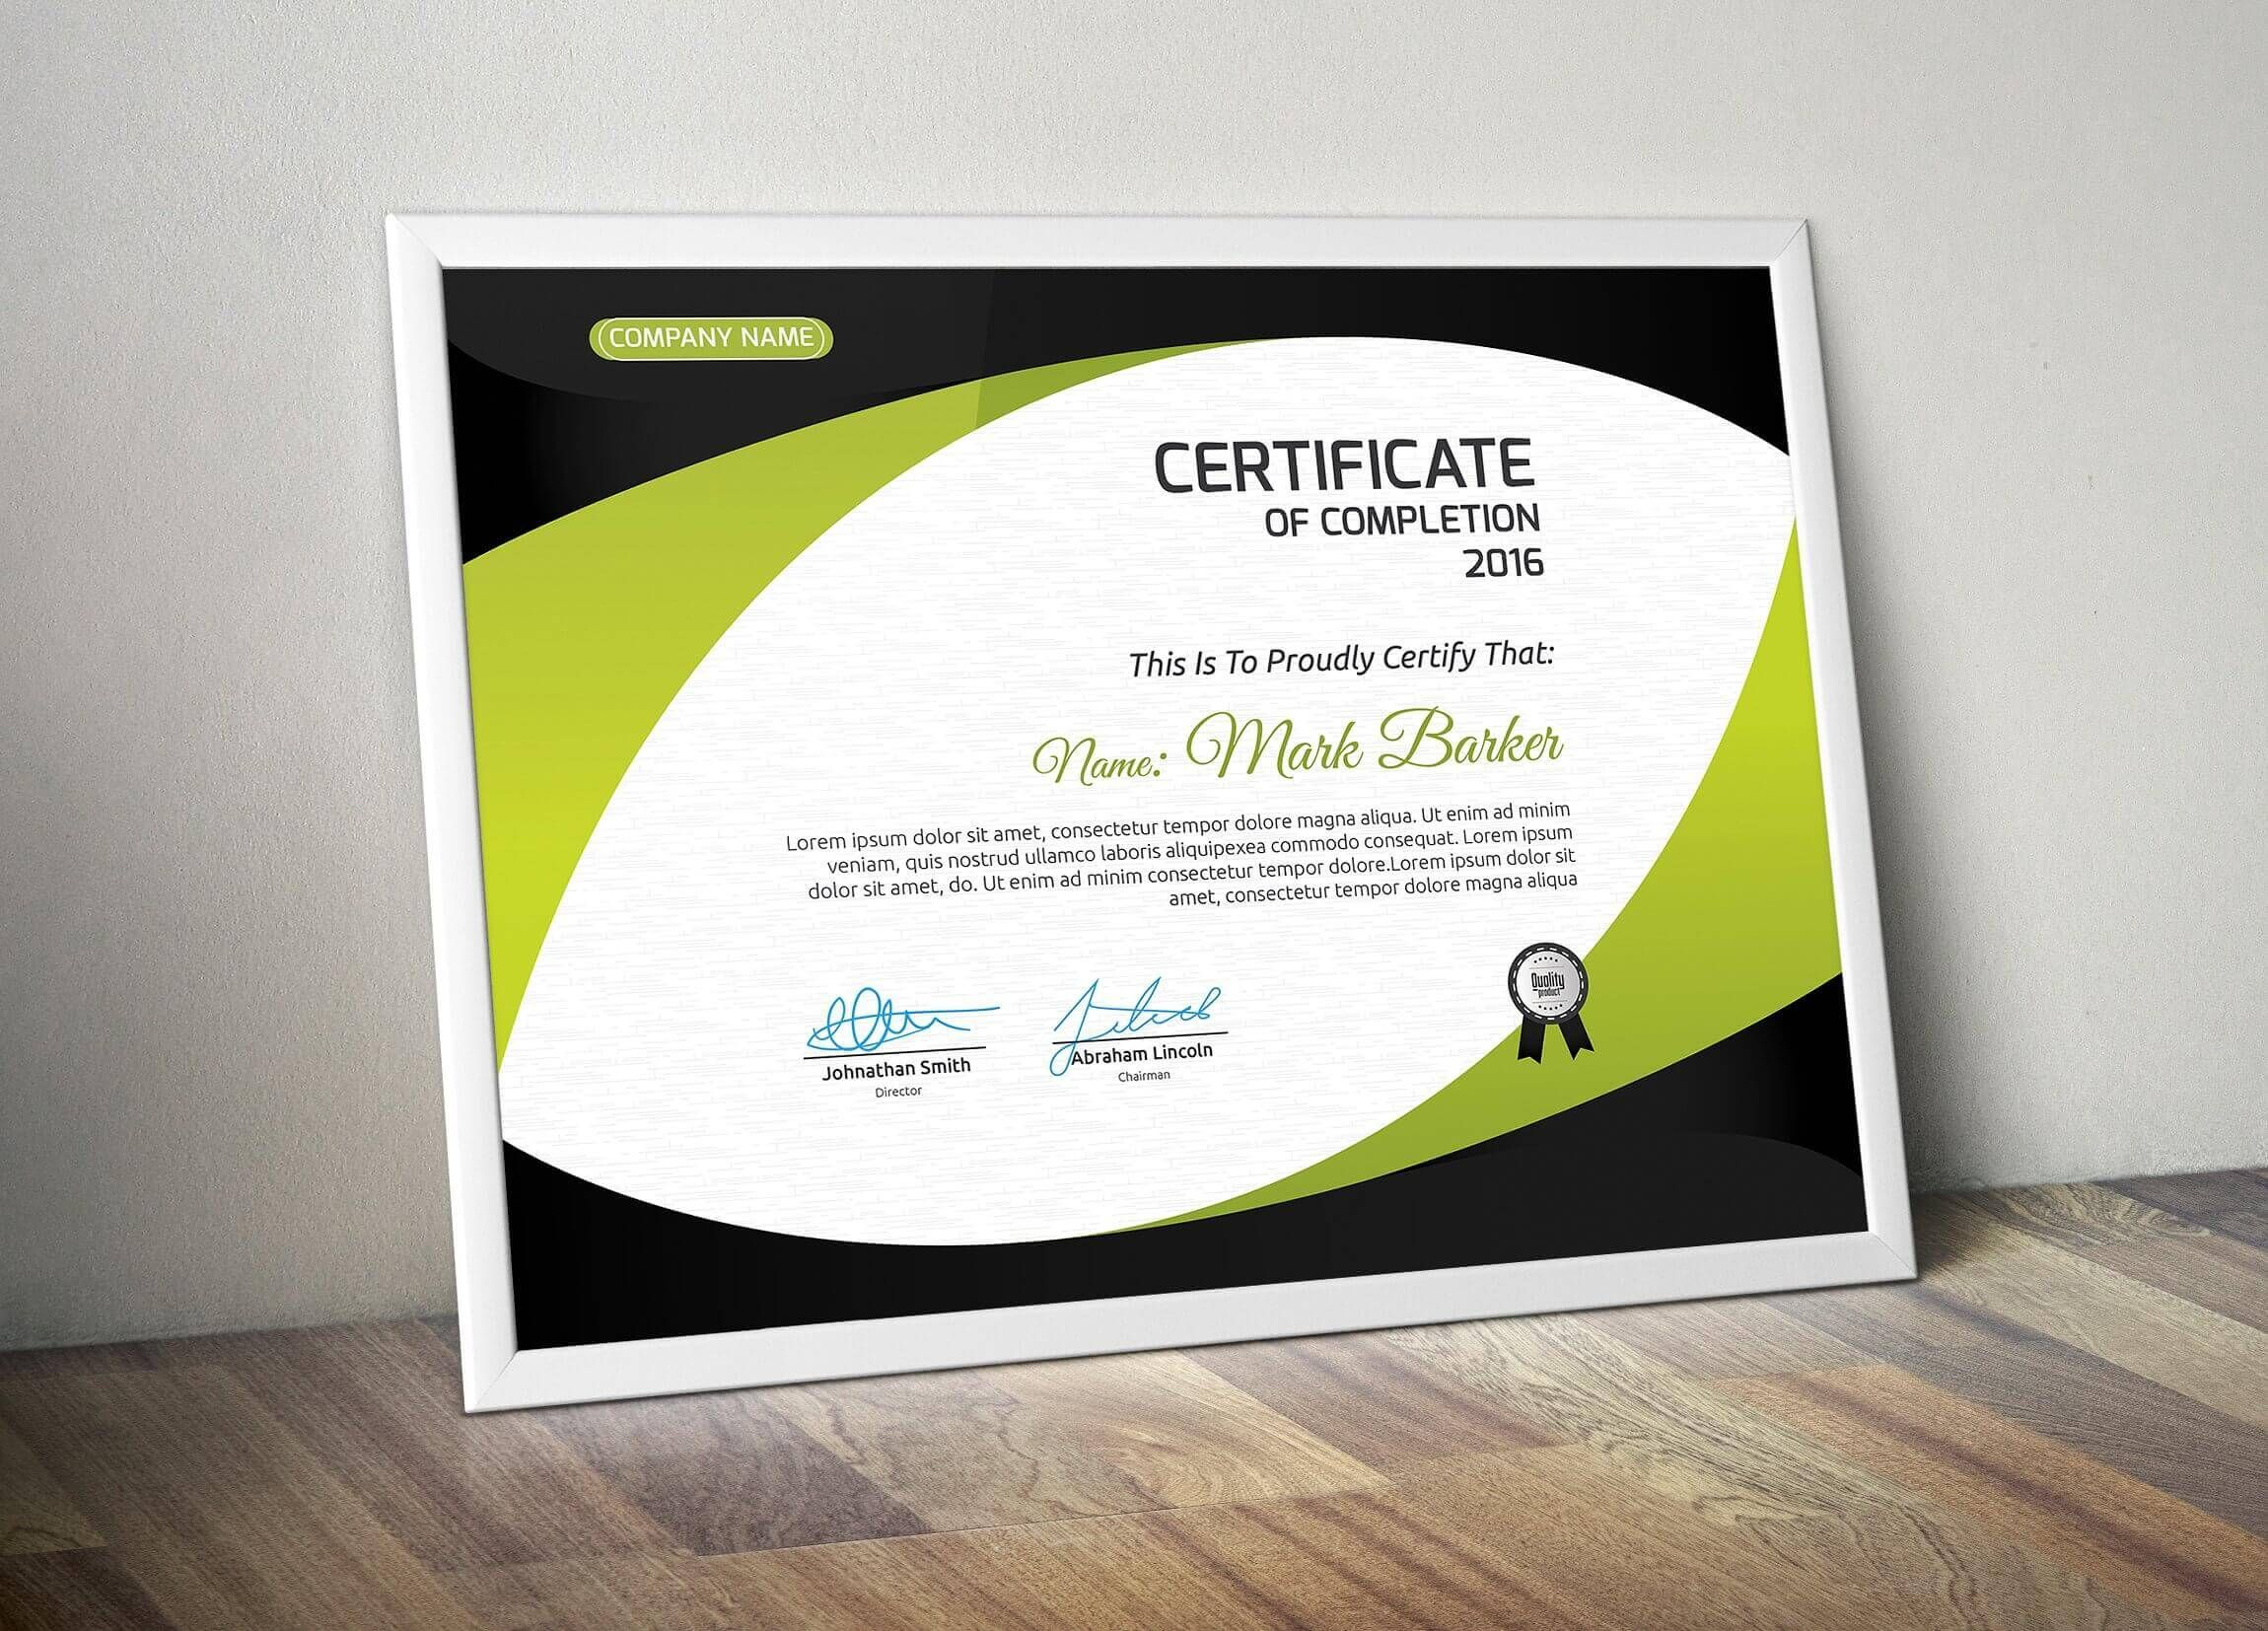 Awesome certificate bundle award bundle calligraphic certificate yadclub Choice Image